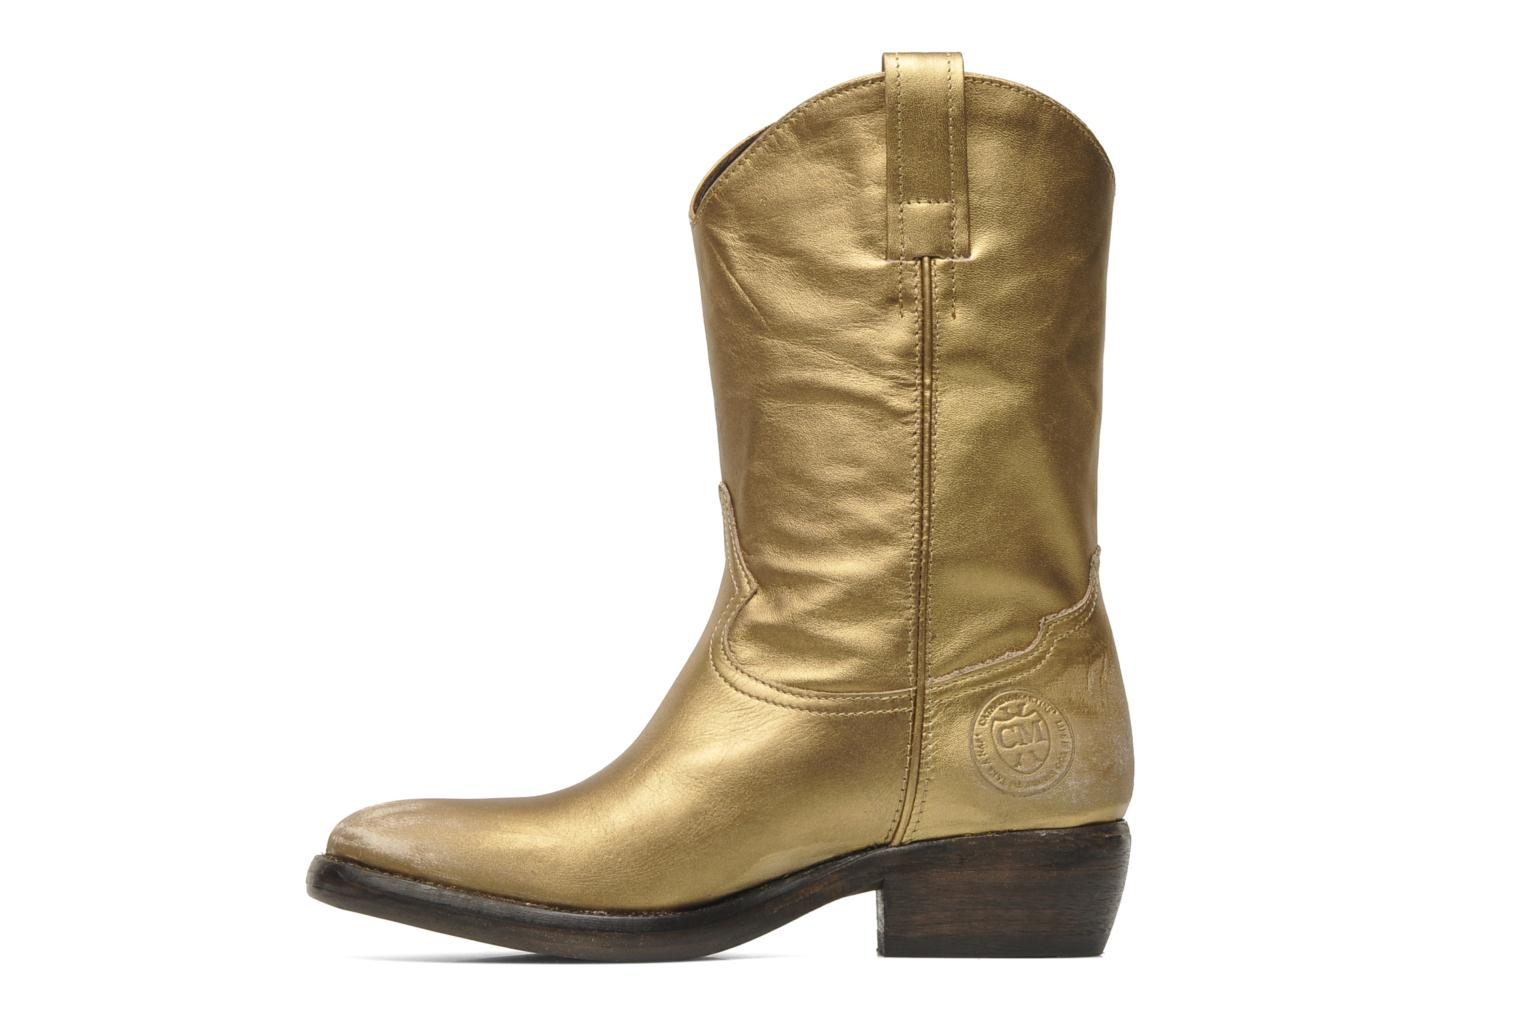 Bottines et boots Catarina Martins Vendit LE2026L Or et bronze vue face